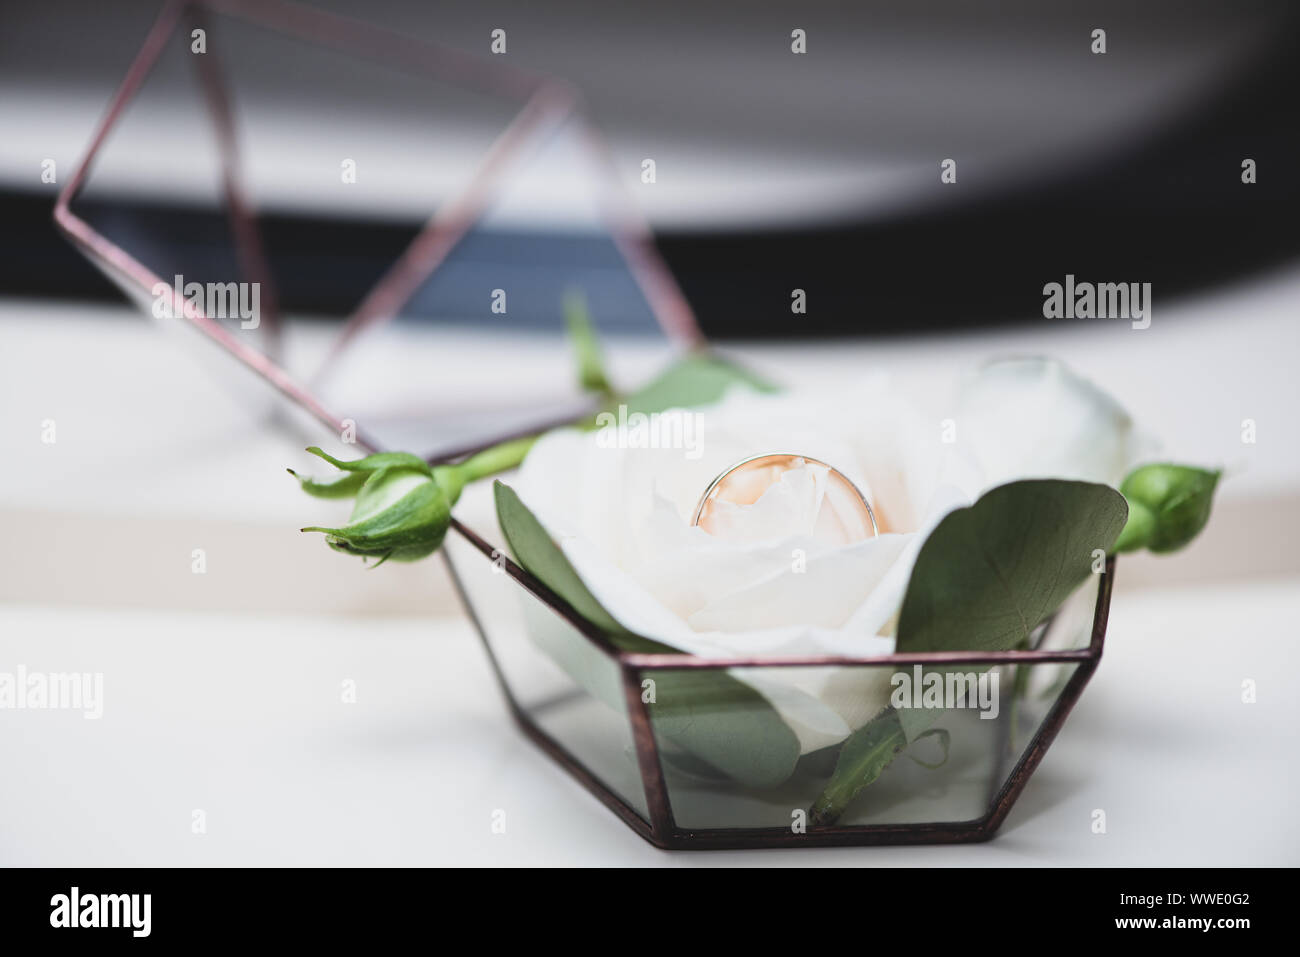 Two wedding rings in a beautiful box decorated with rose flowers. Themes of engagement, declaration of love, wedding day, florist services. Stock Photo